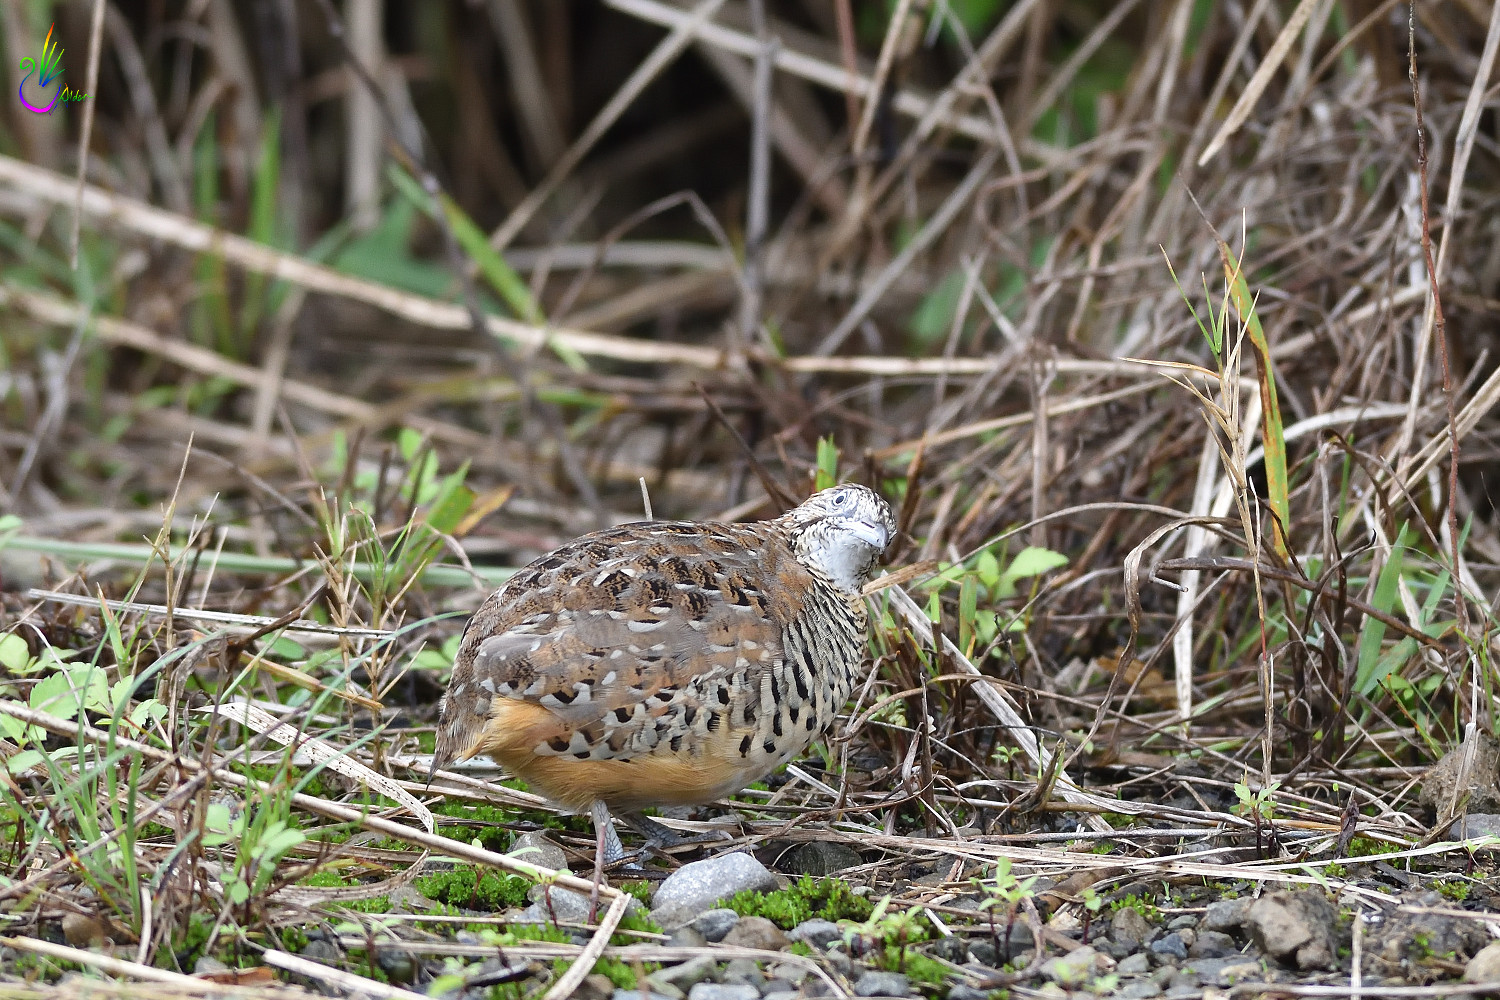 Barred_Buttonquail_7182